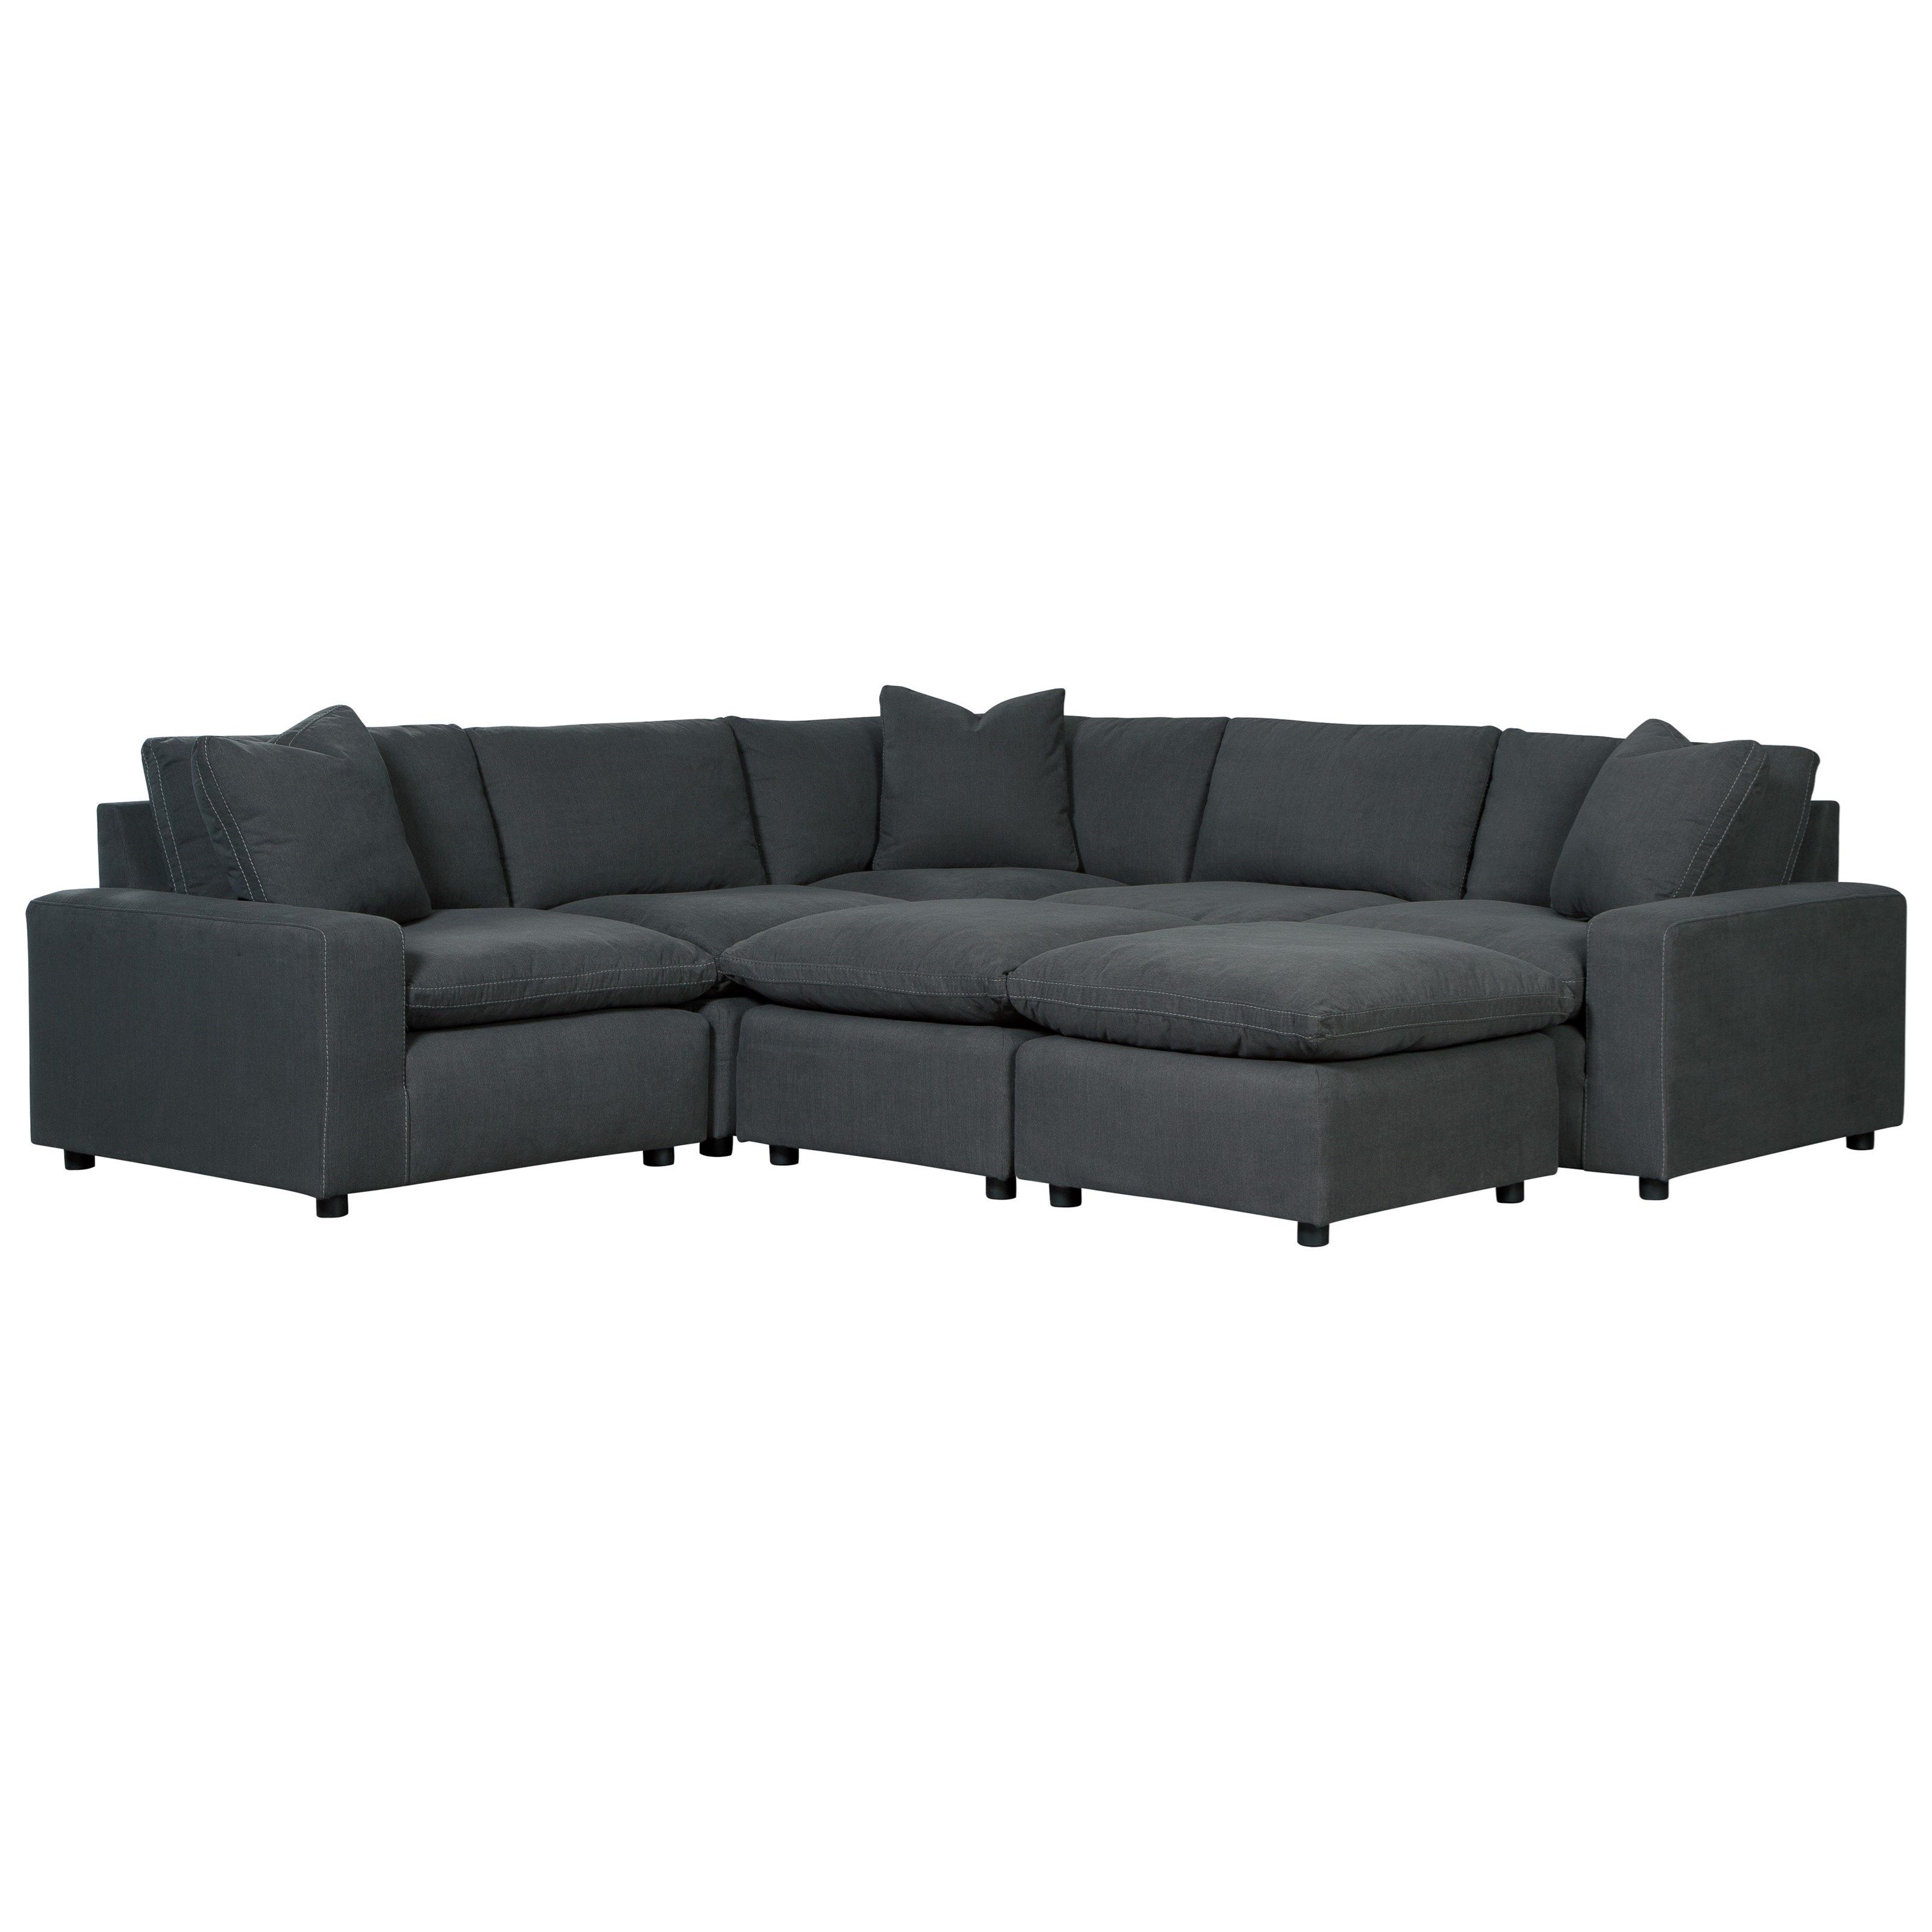 Savesto Casual Contemporary 7 Piece Sectional Set By Signature Design By Ashley Ashley Furniture Sectional Ashley Furniture Mattress Furniture